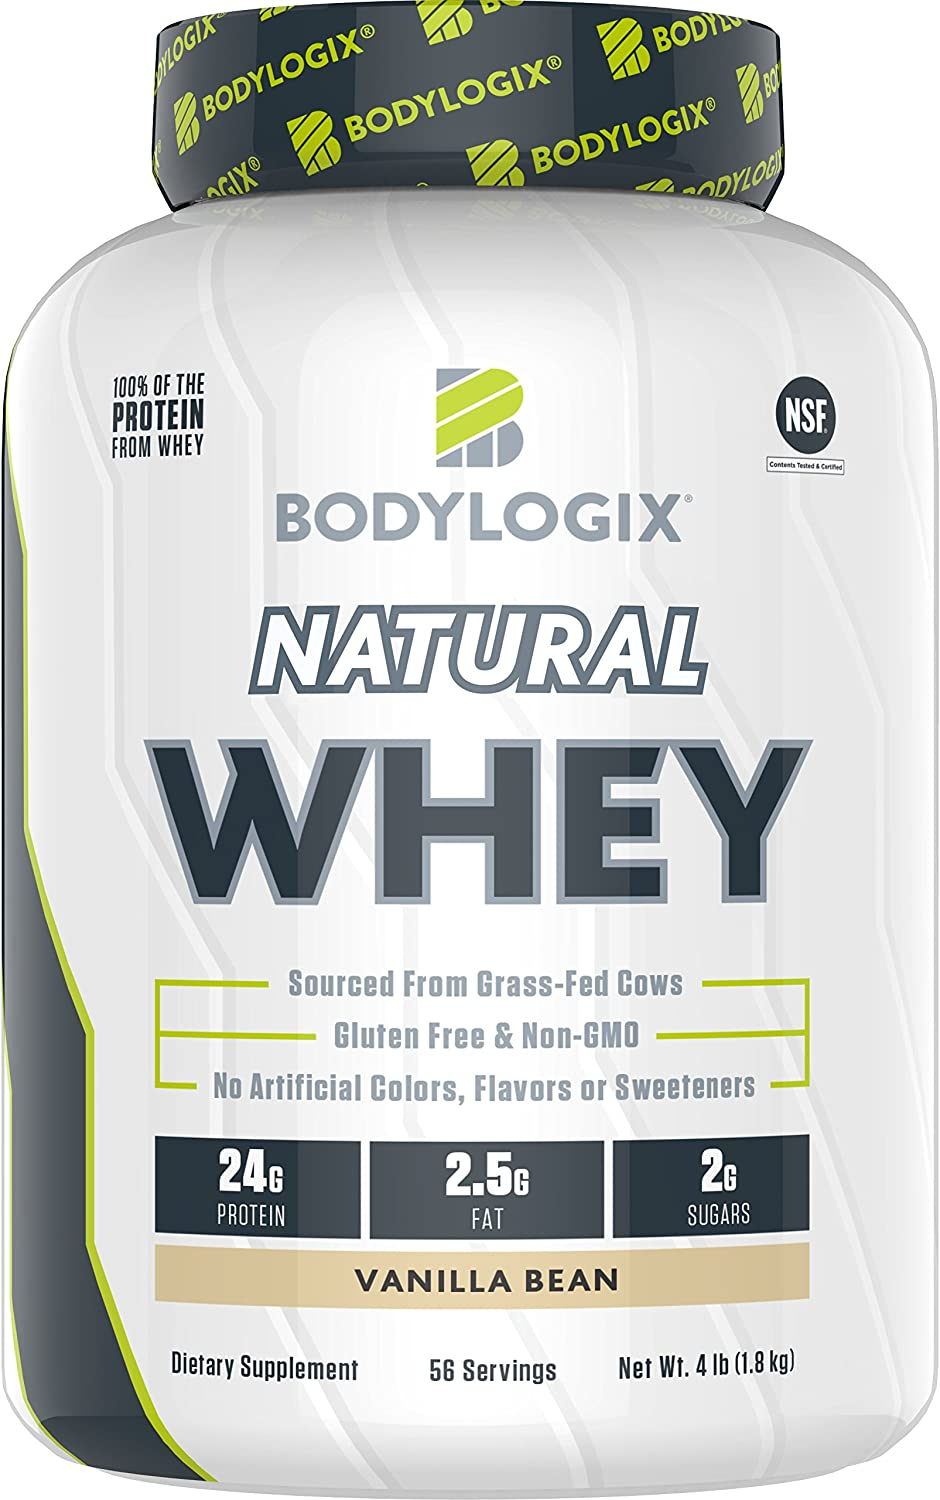 Bodylogix Natural Grass-Fed Whey Protein Powder, NSF Certified, Vanilla Bean, 4 Pound